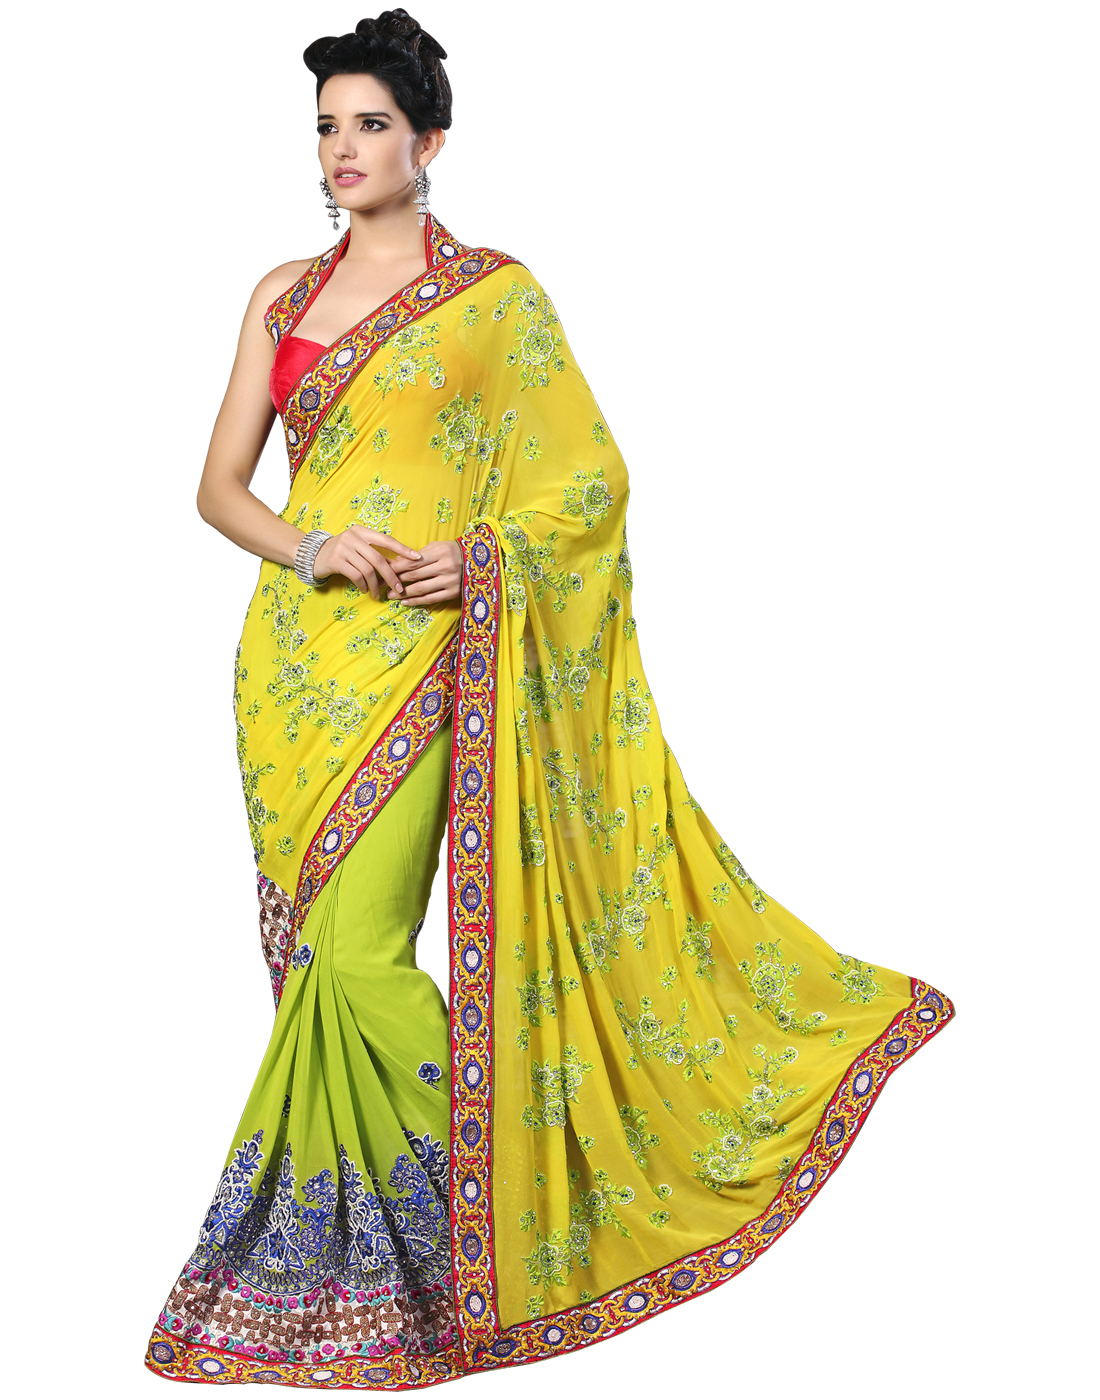 0a9ce811b2c34 Yellow Georgette Fancy Hand Work Embroidered Sarees With Blouse - Surat Tex  - 278341